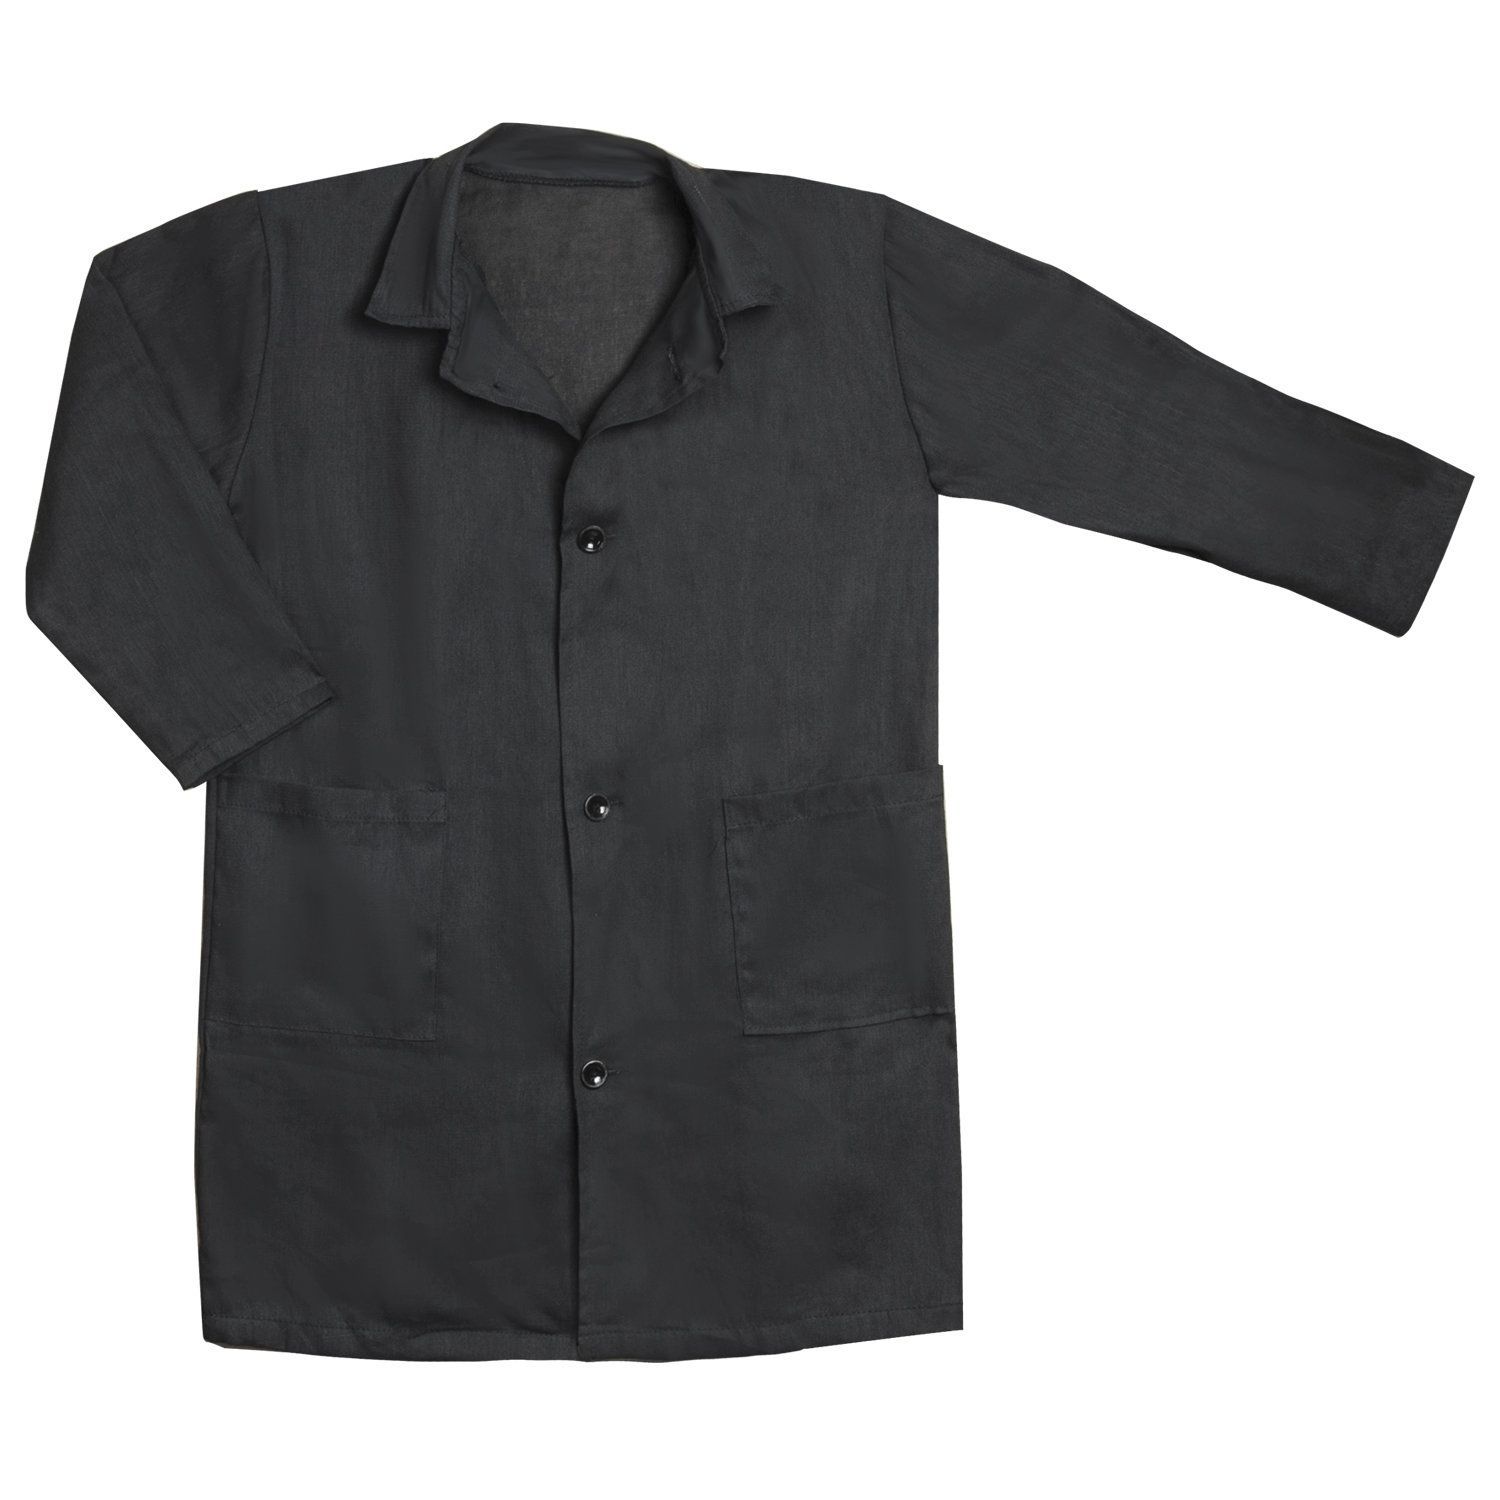 Bathrobe the school for classroom work, height 158-164, calico, TC, black